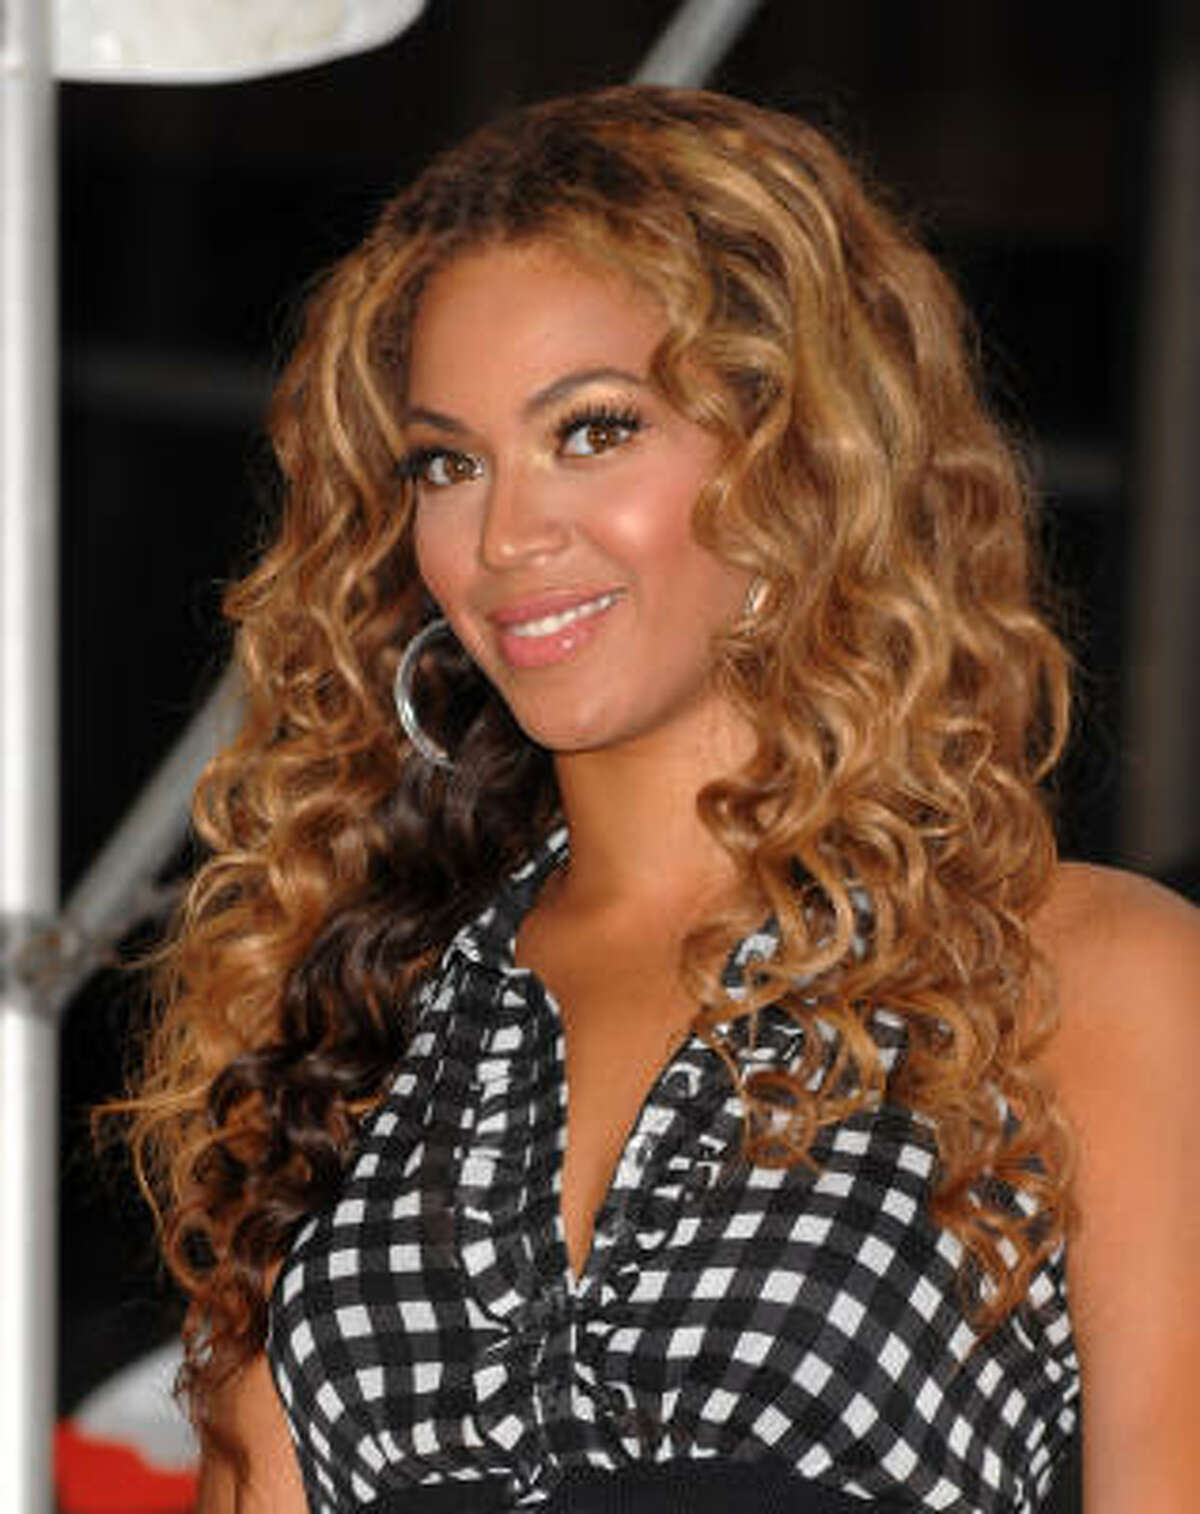 2. Beyonce Knowles, $87 million annual earnings